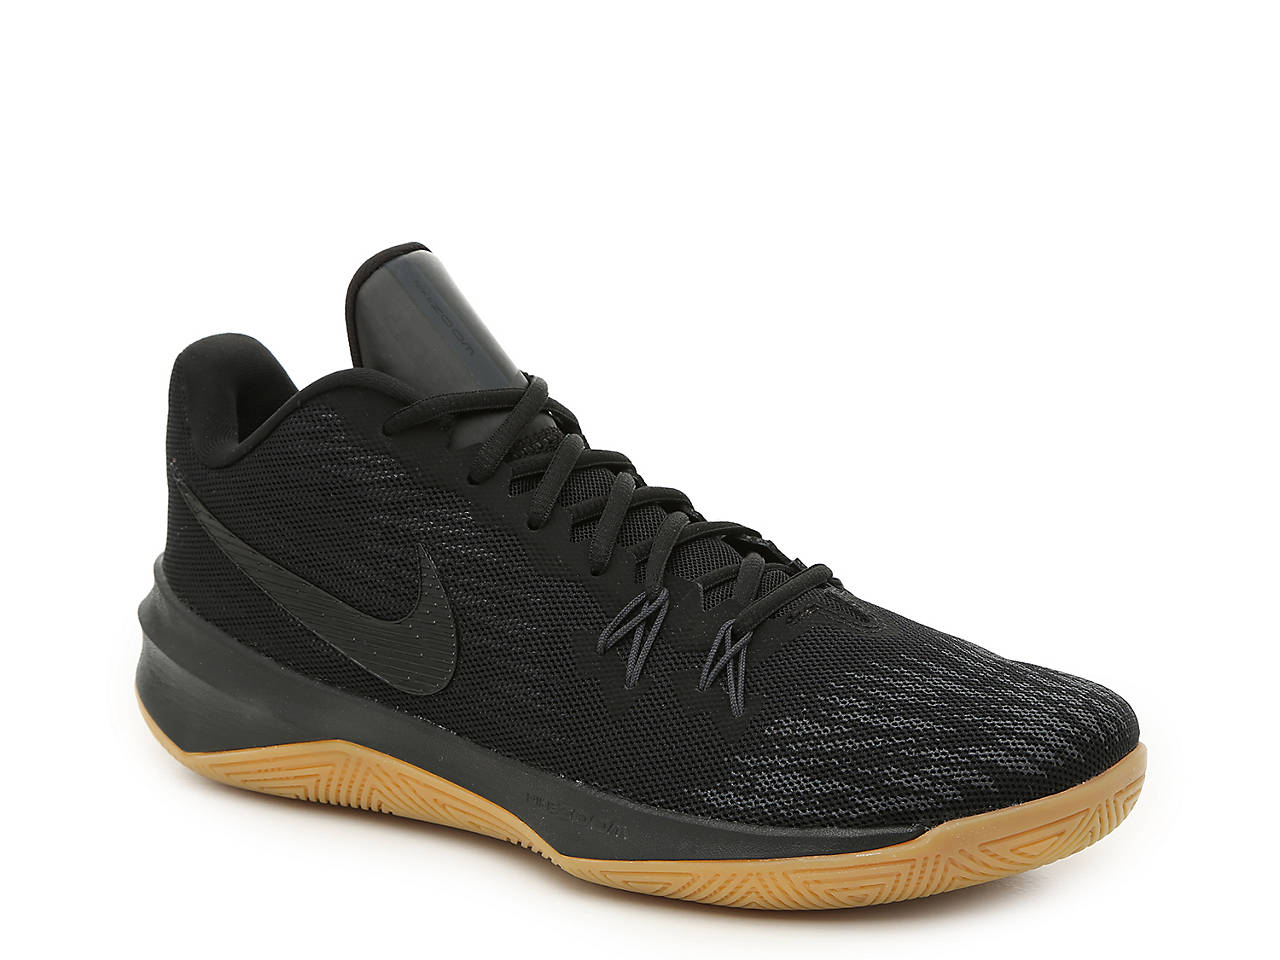 e9bf5afd447 Nike Zoom Evidence II Basketball Shoe - Men's Men's Shoes | DSW